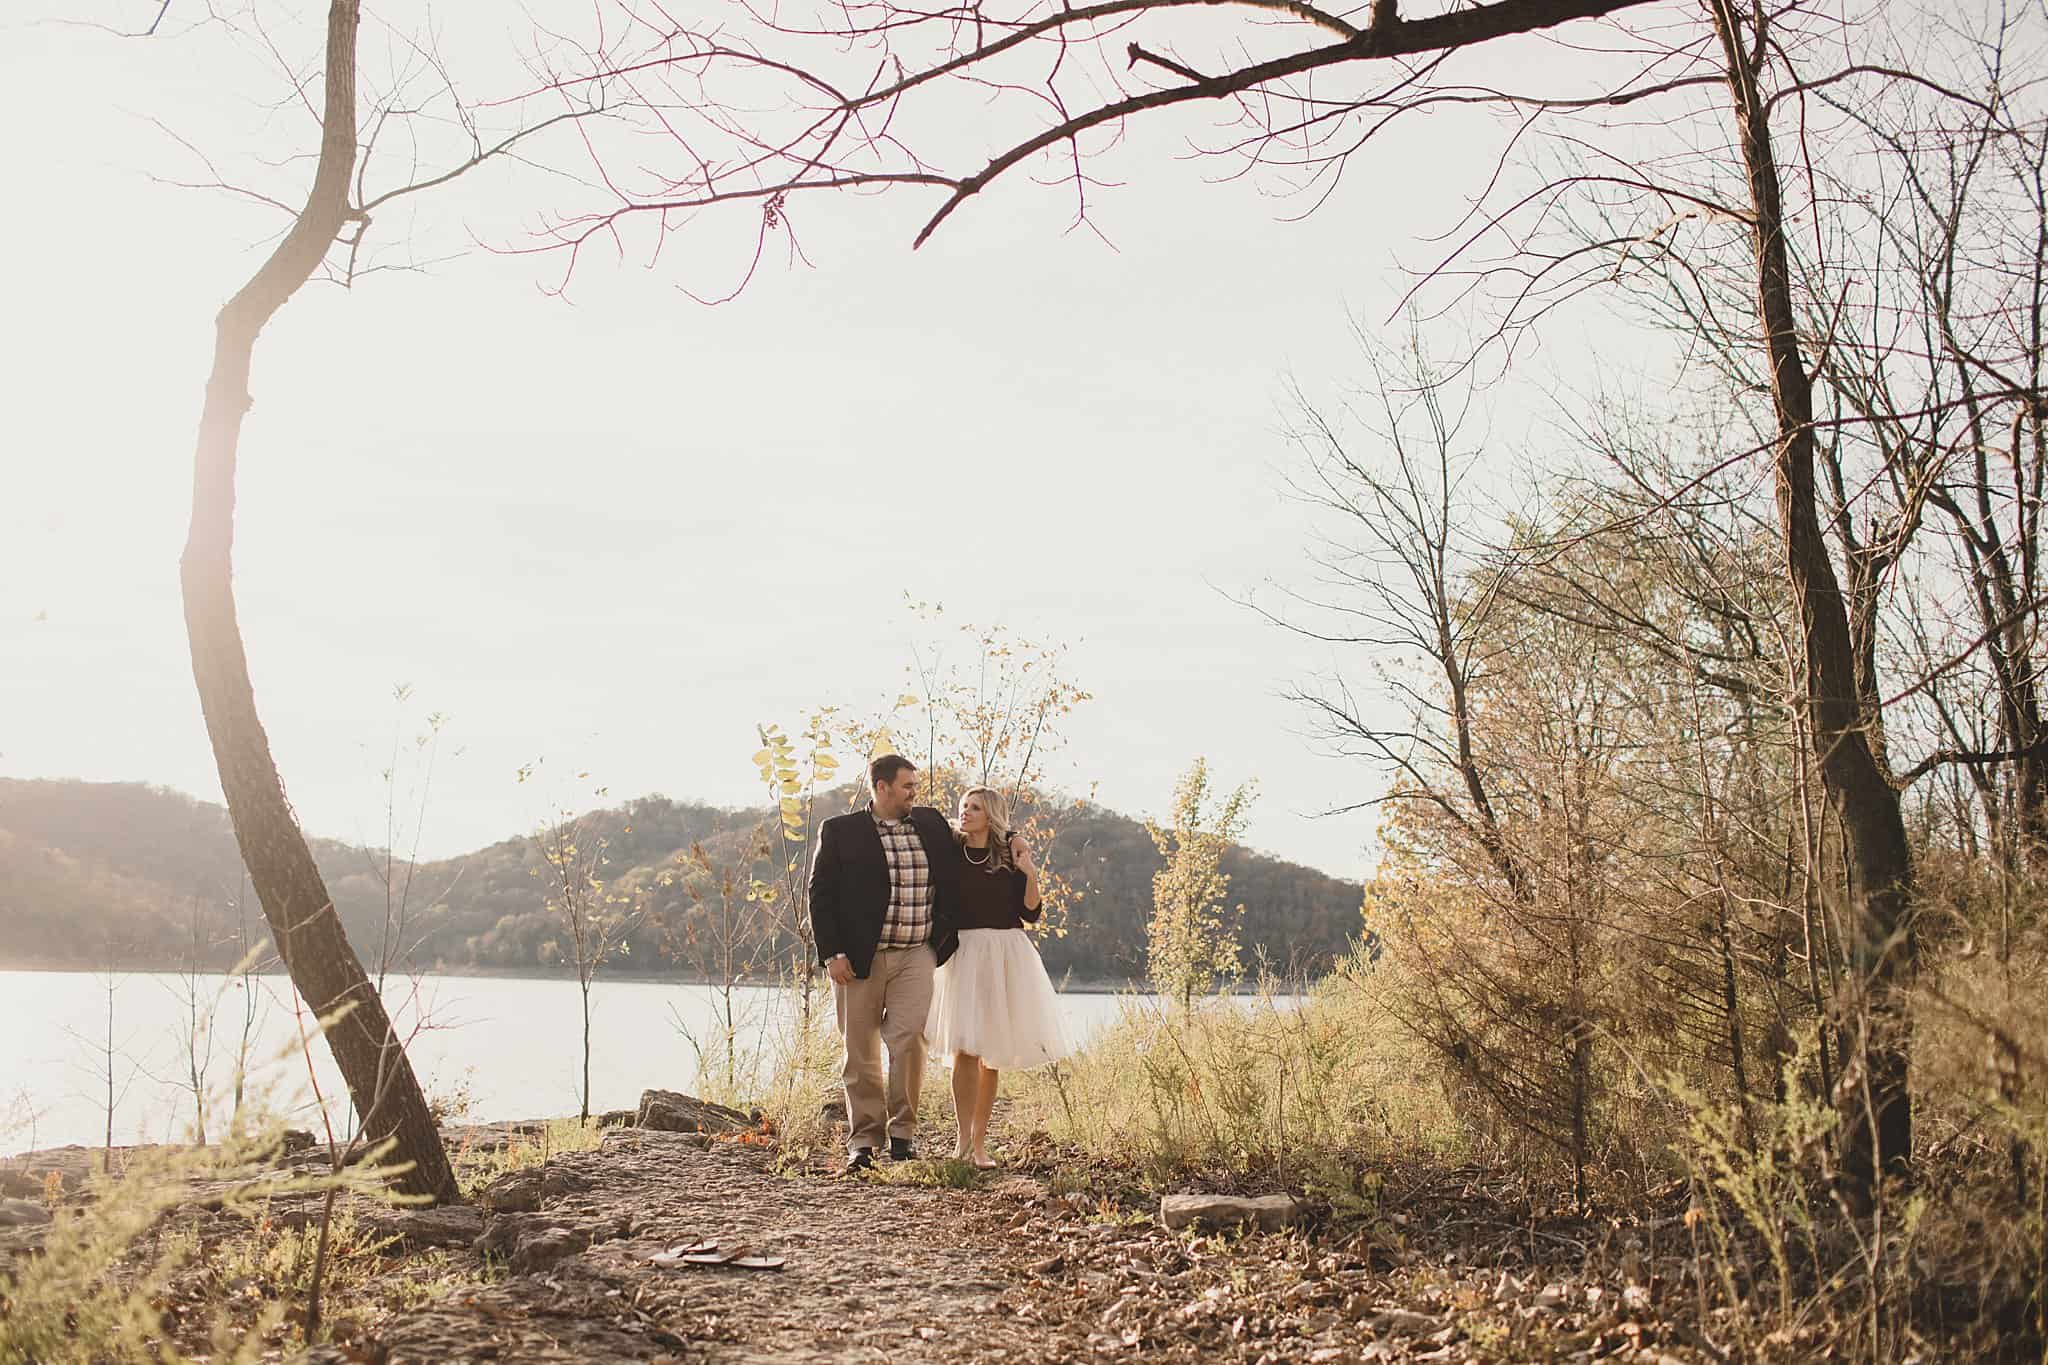 Whitney & Josh - Crisp Fall  Lake Engagement Session at Edgar Evins State Park, Tennessee